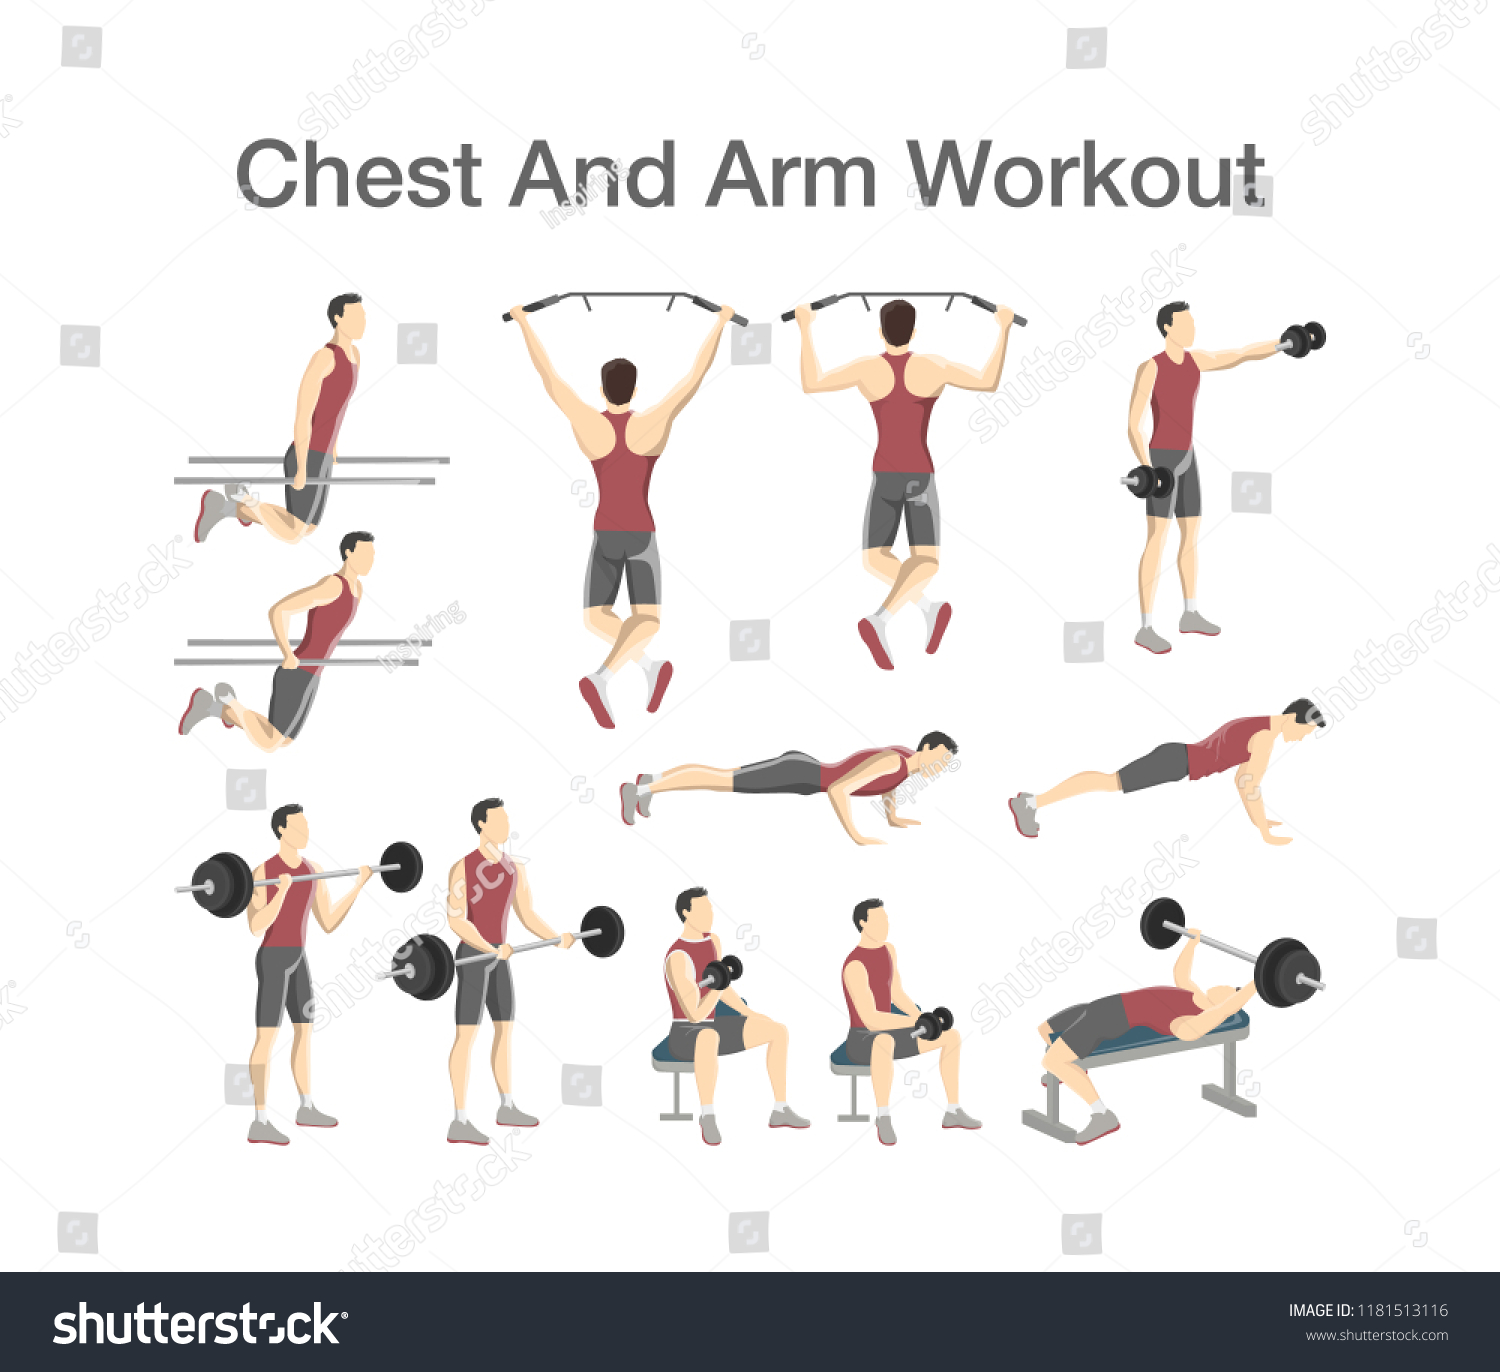 Arm And Chest Workout For Men With Dumbbell Barbell Sport Exercise Muscle Building